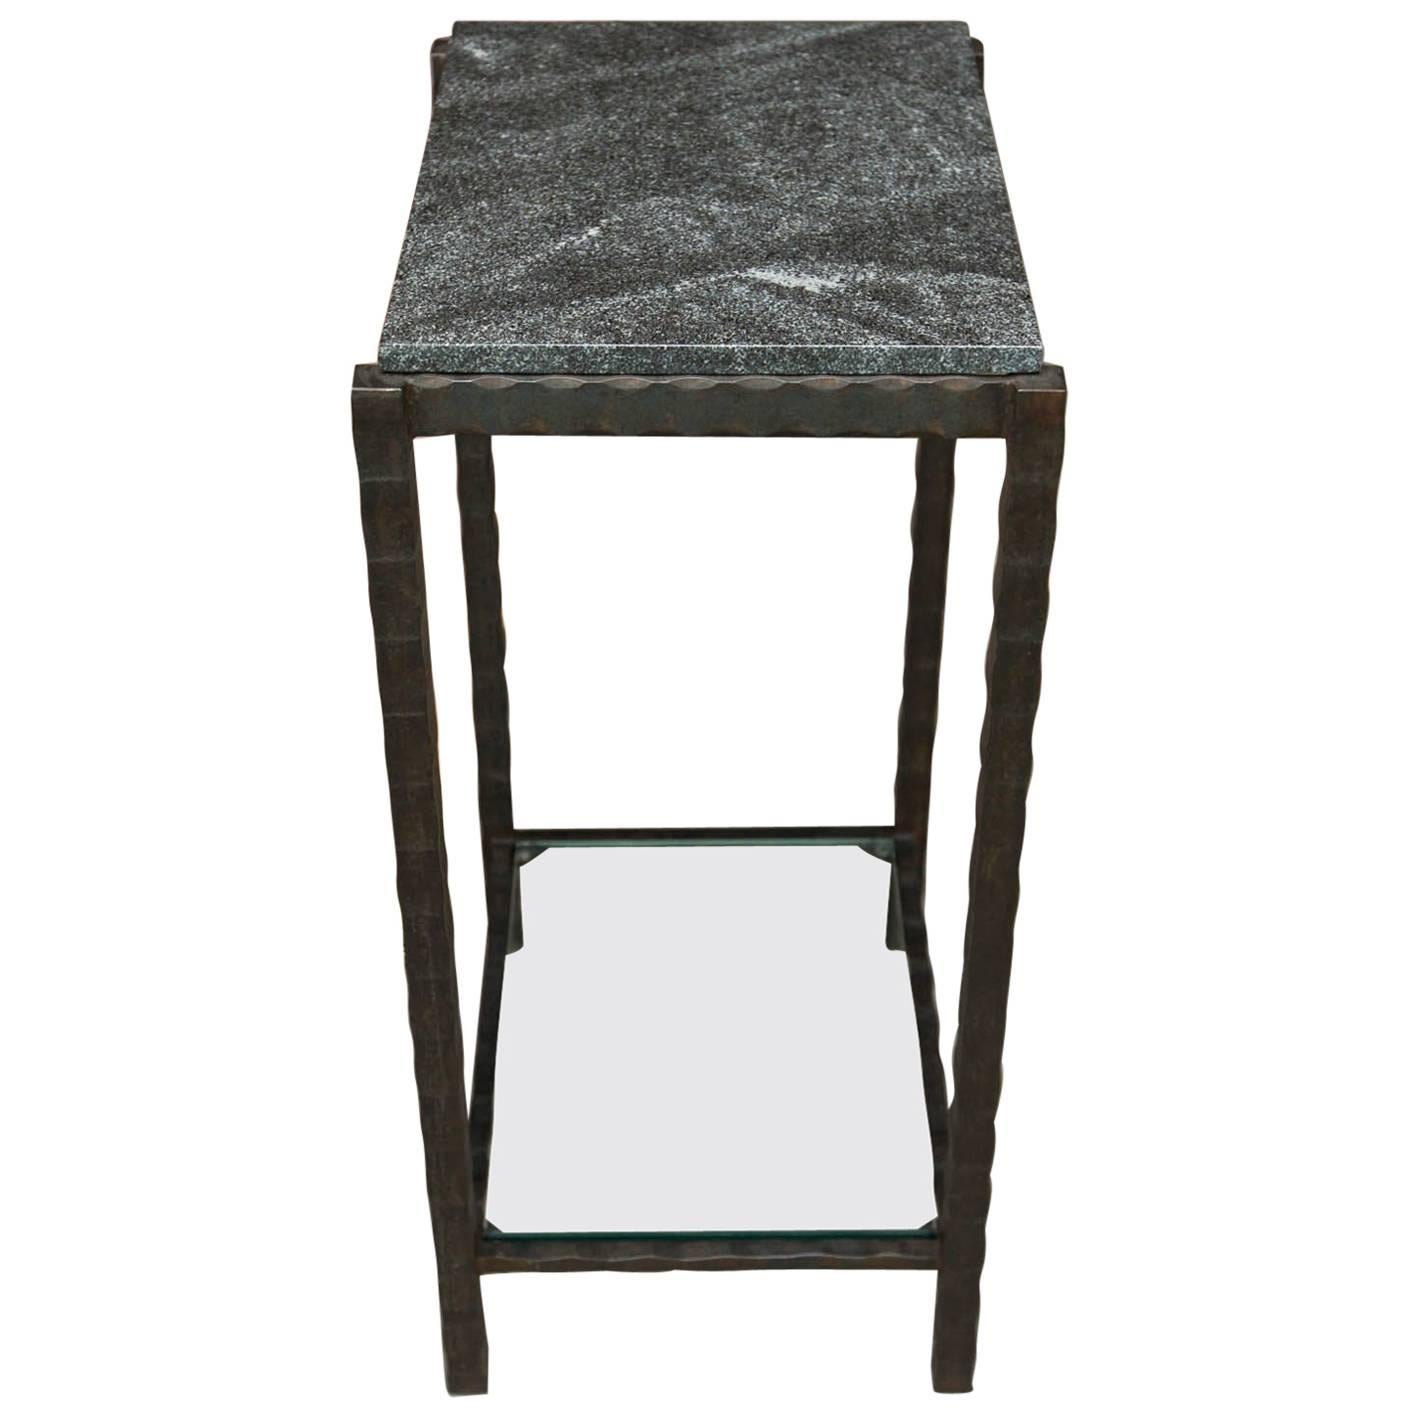 Genial Hand Forged Steel And Granite Side Table By Gregory Clark For Sale